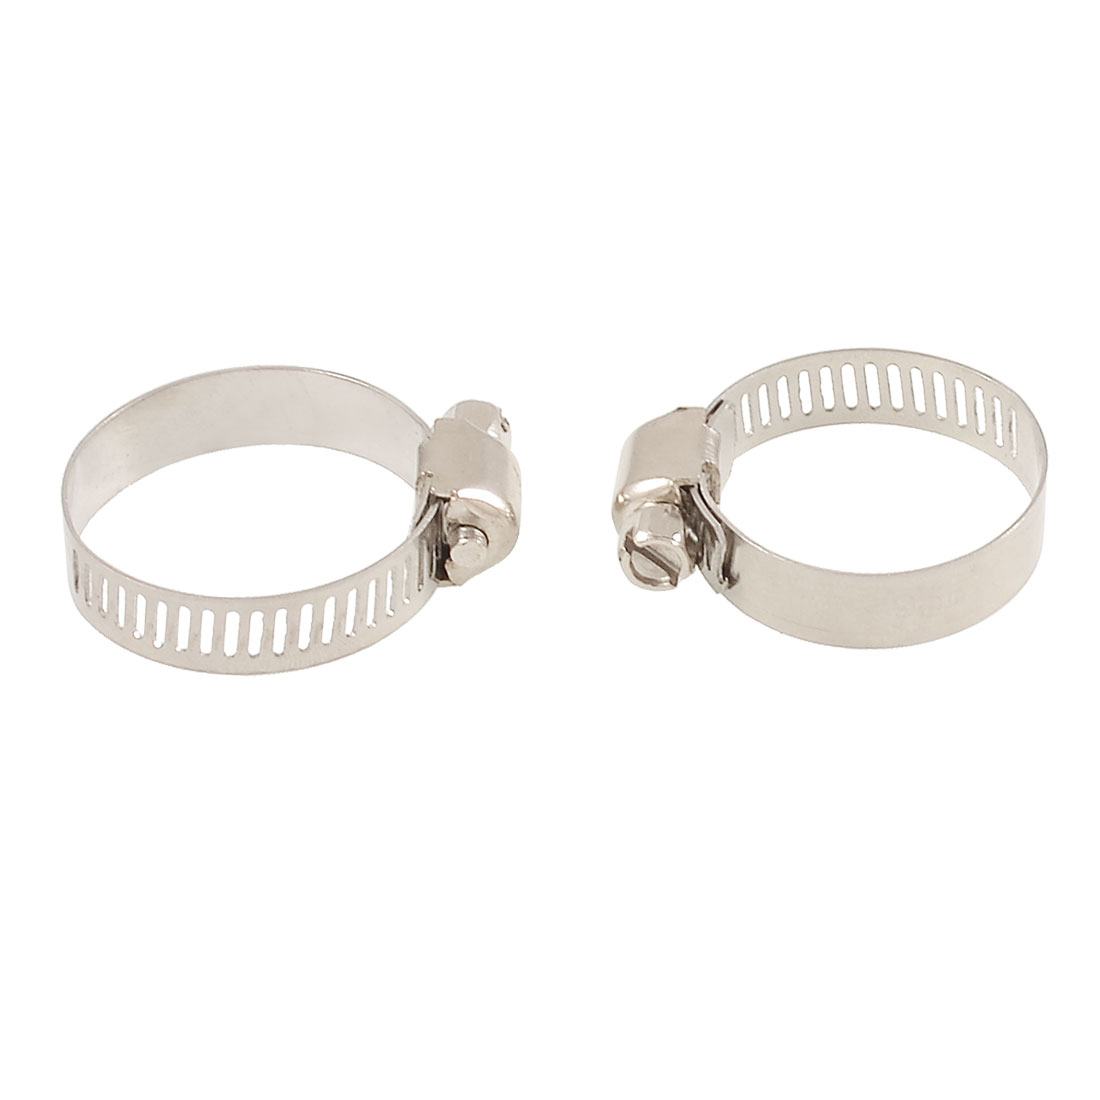 2 Pcs Stainless Steel Silver Tone 13-29mm Hose Clamps